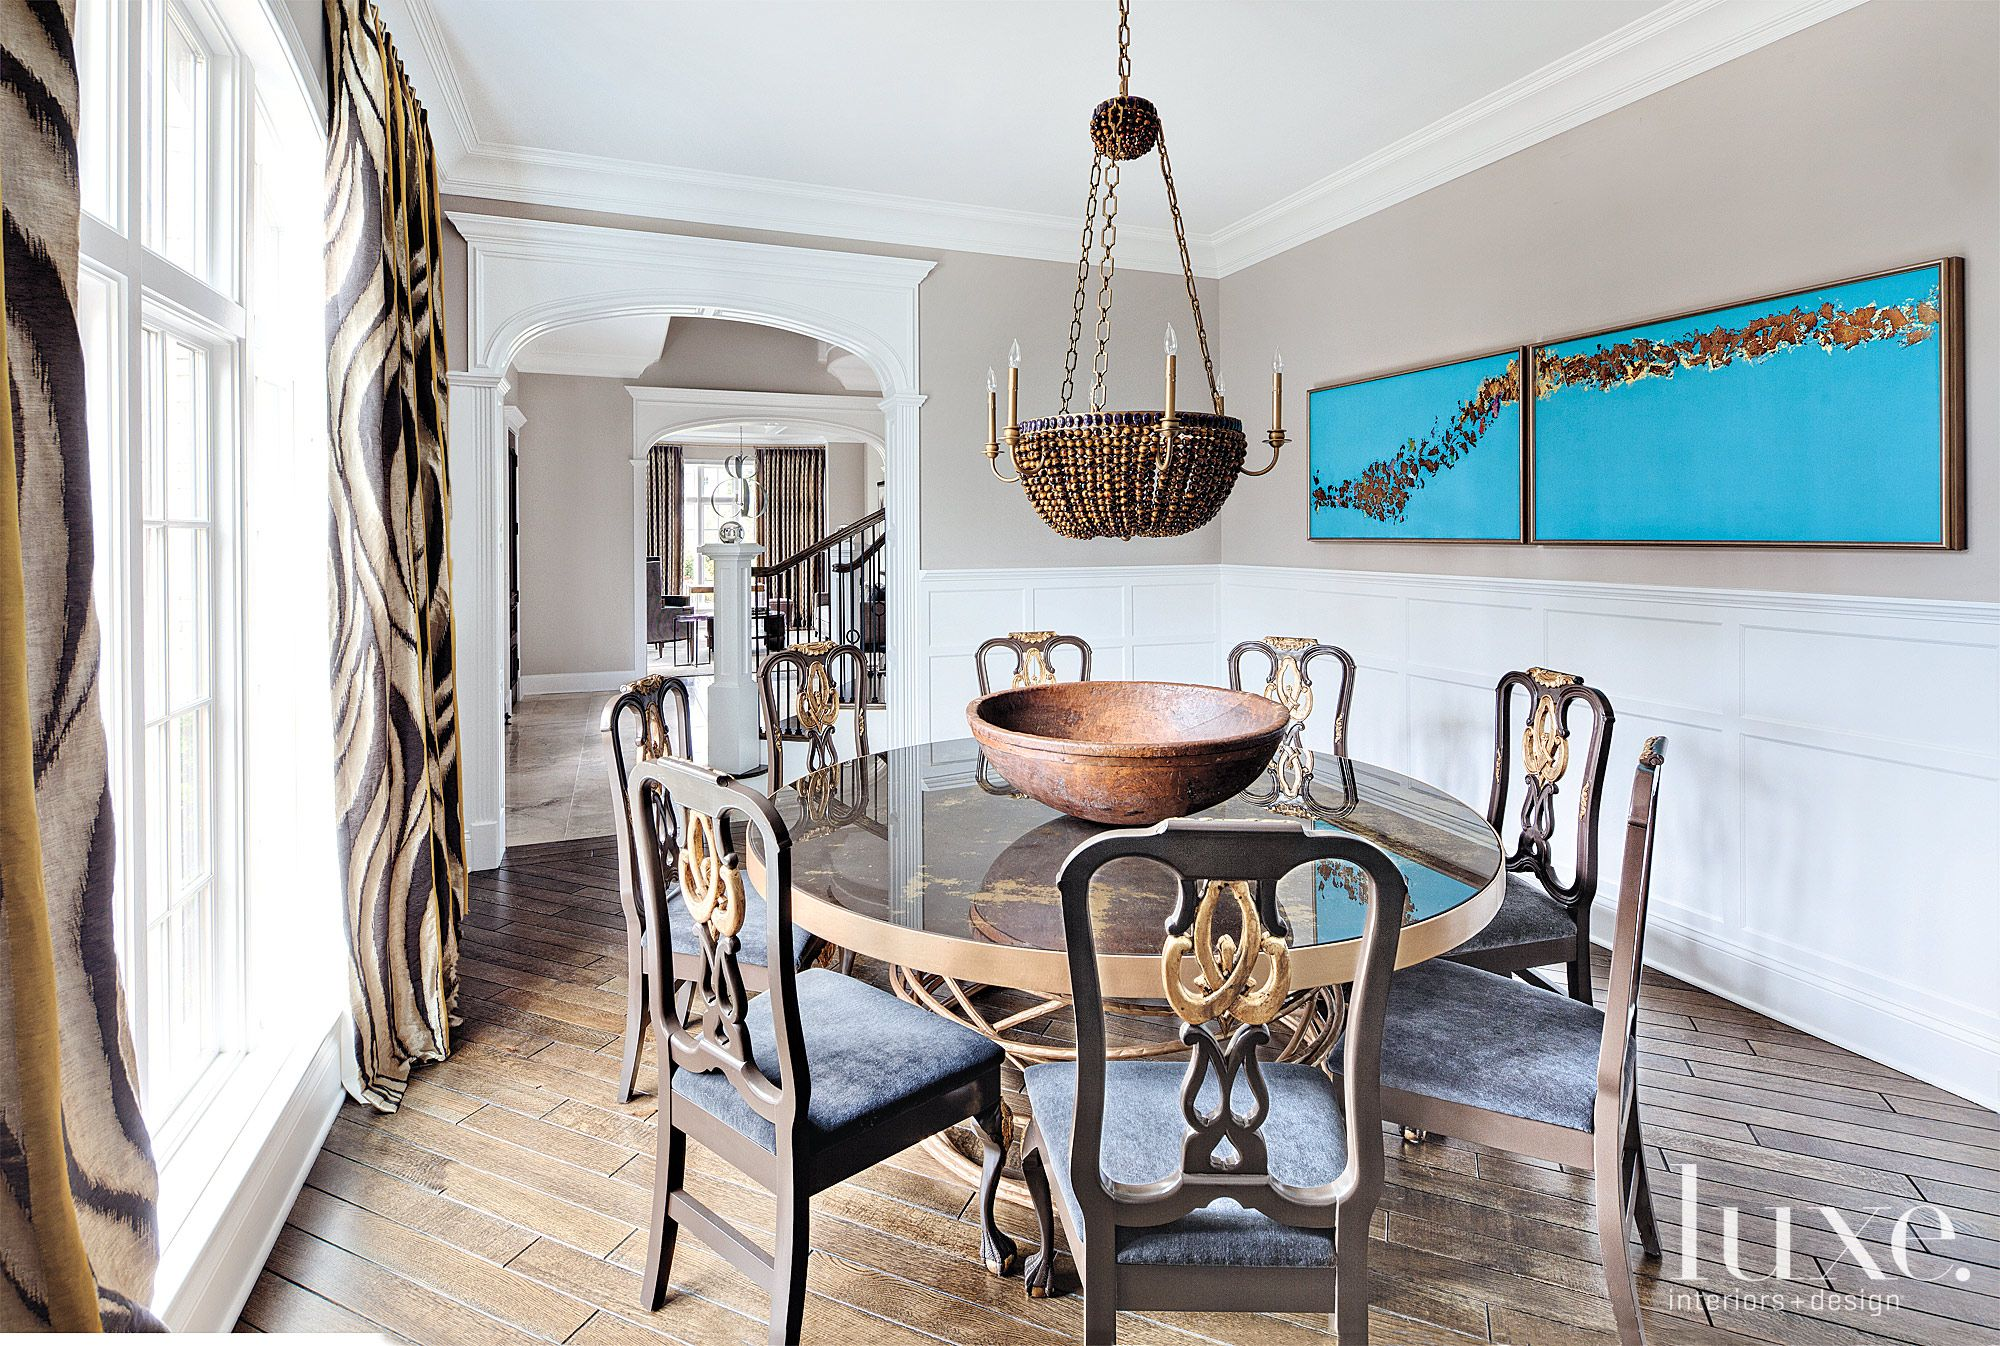 Contemporary Beige Dining Room with Blue Artwork